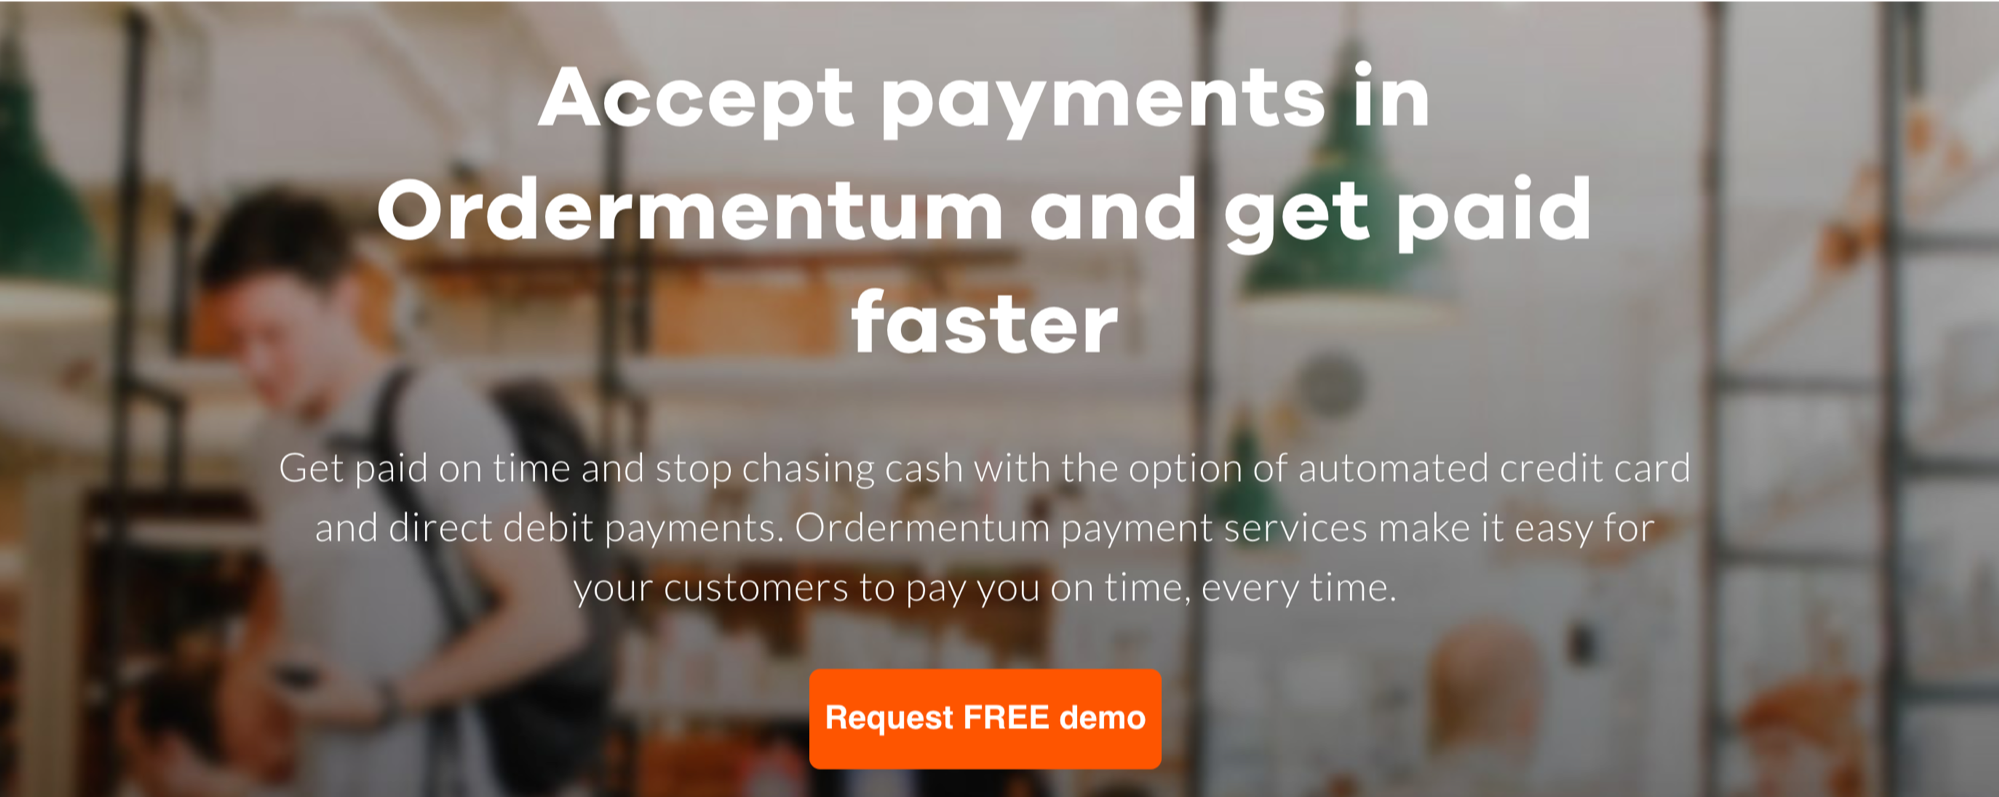 Get Paid Faster - Screenshot Image